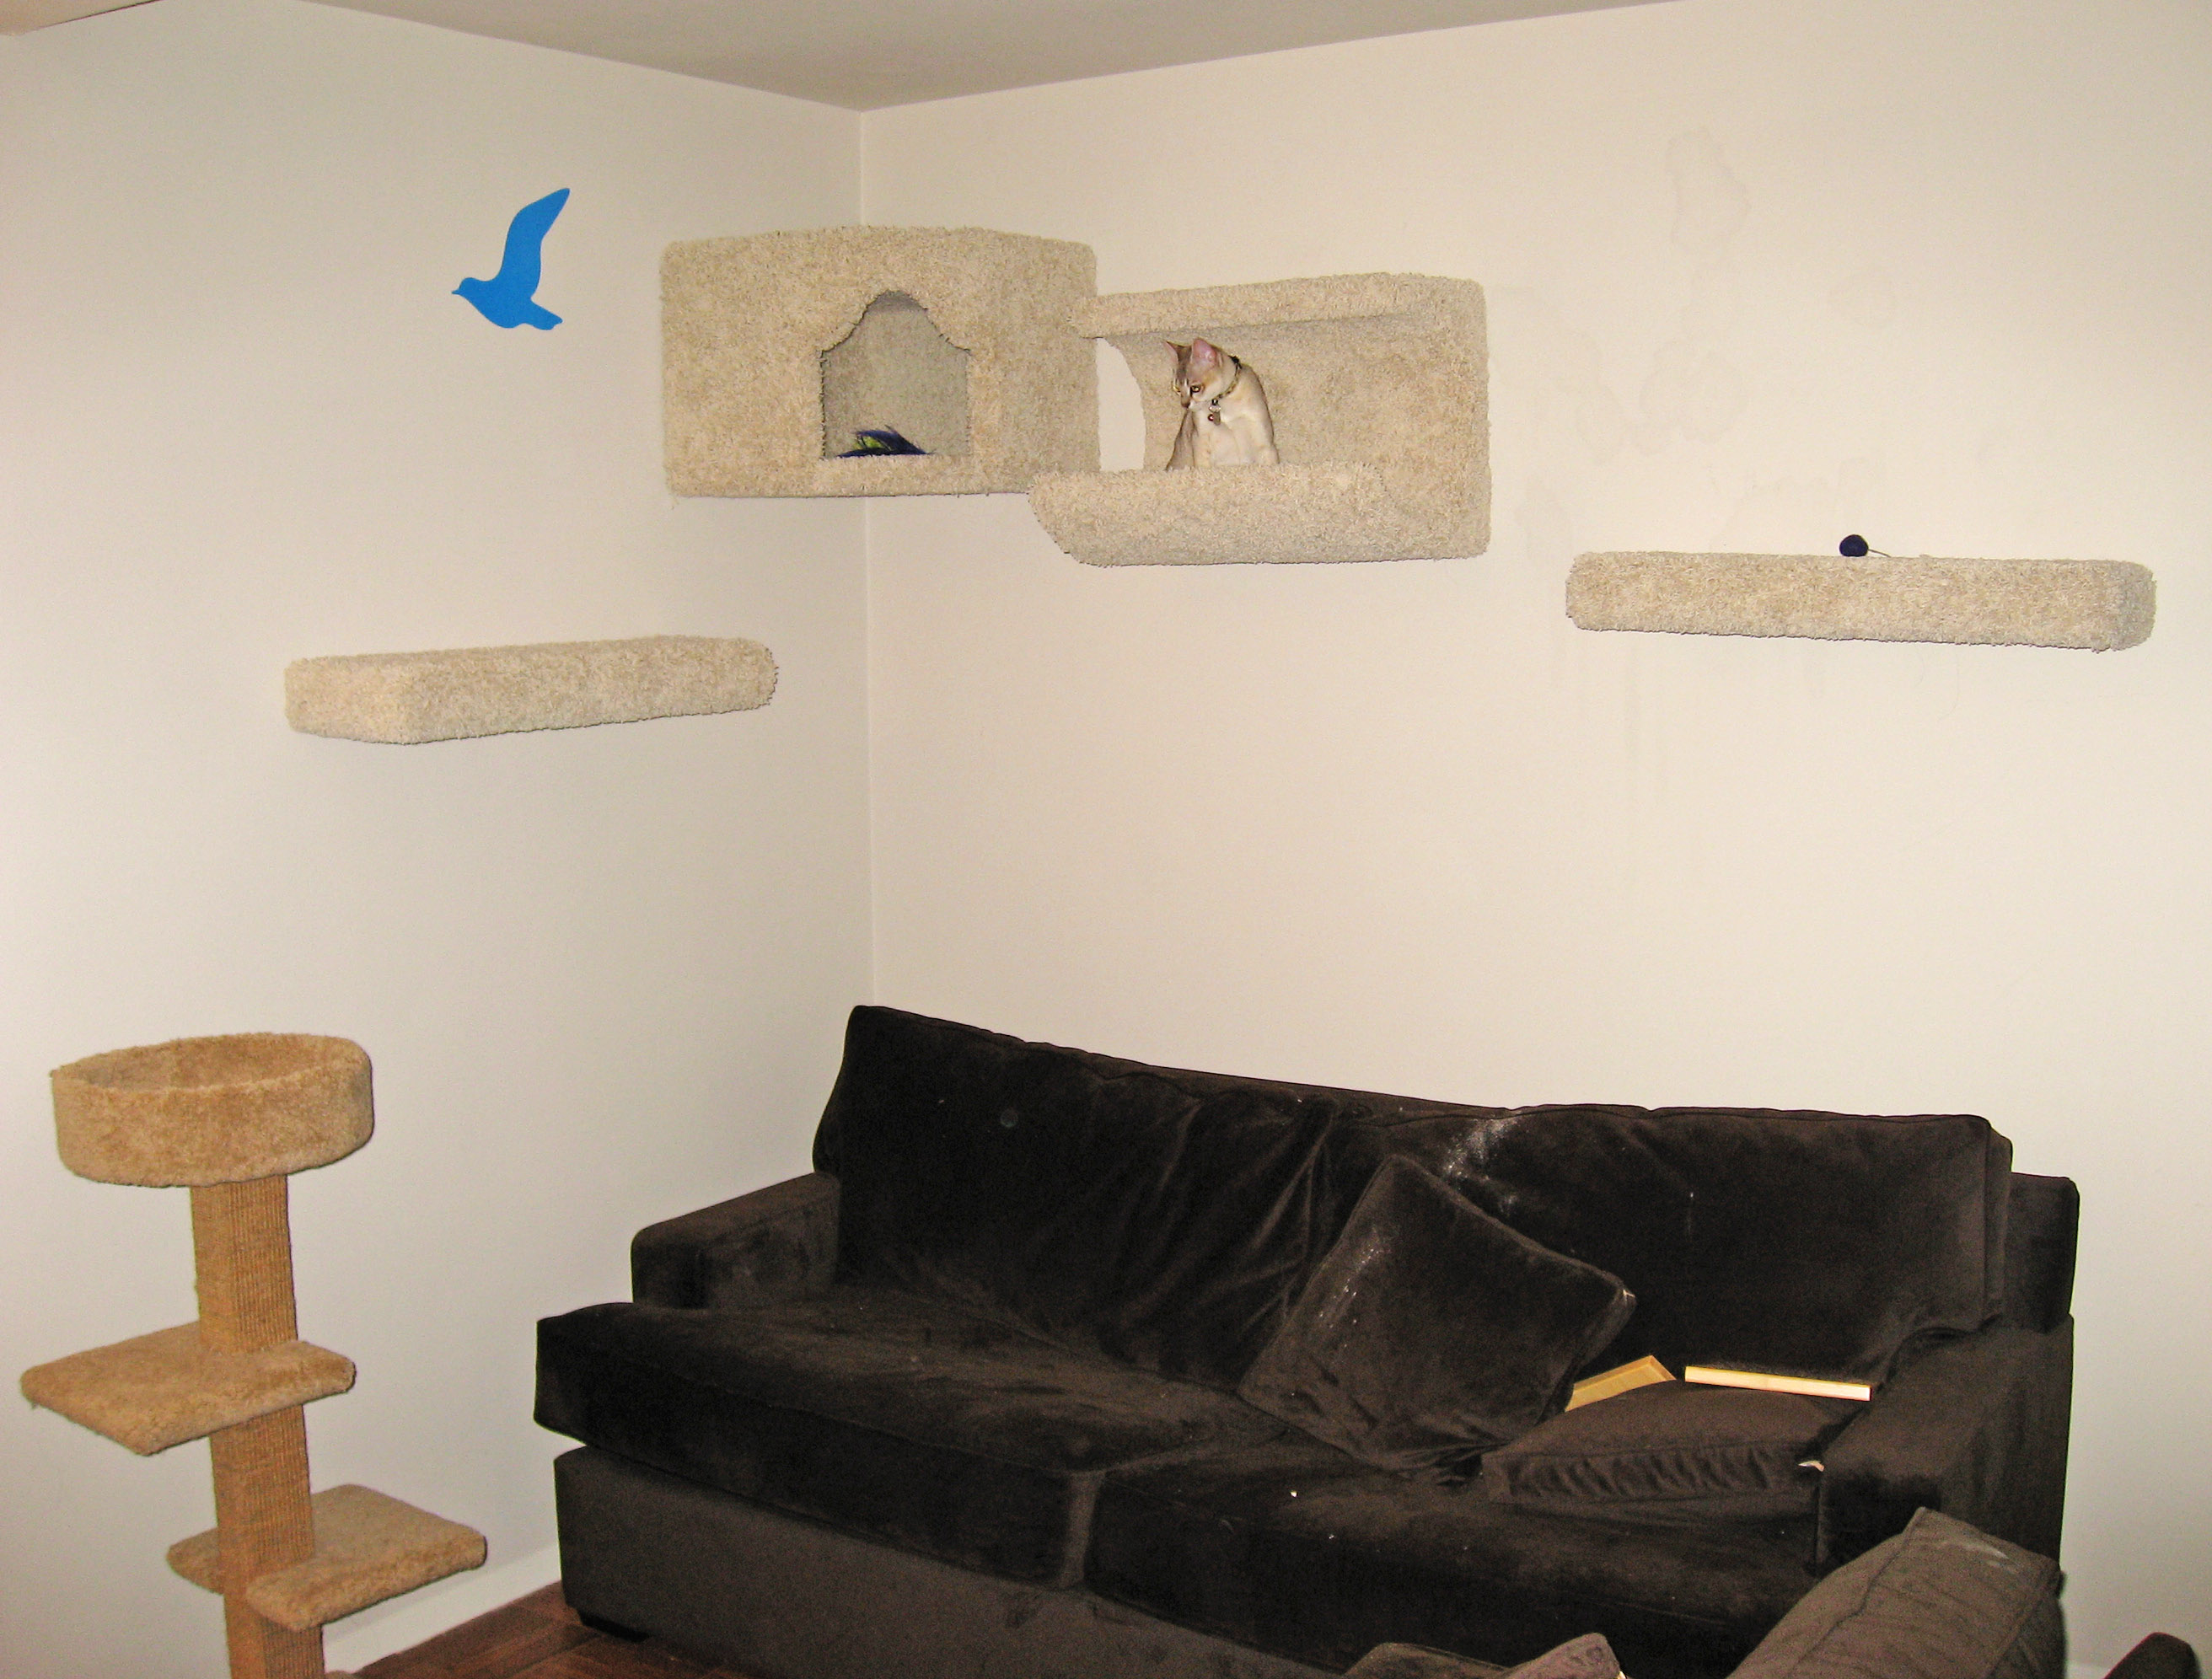 Wall mounted cat furniture related keywords suggestions - Wall mounted cat furniture ...